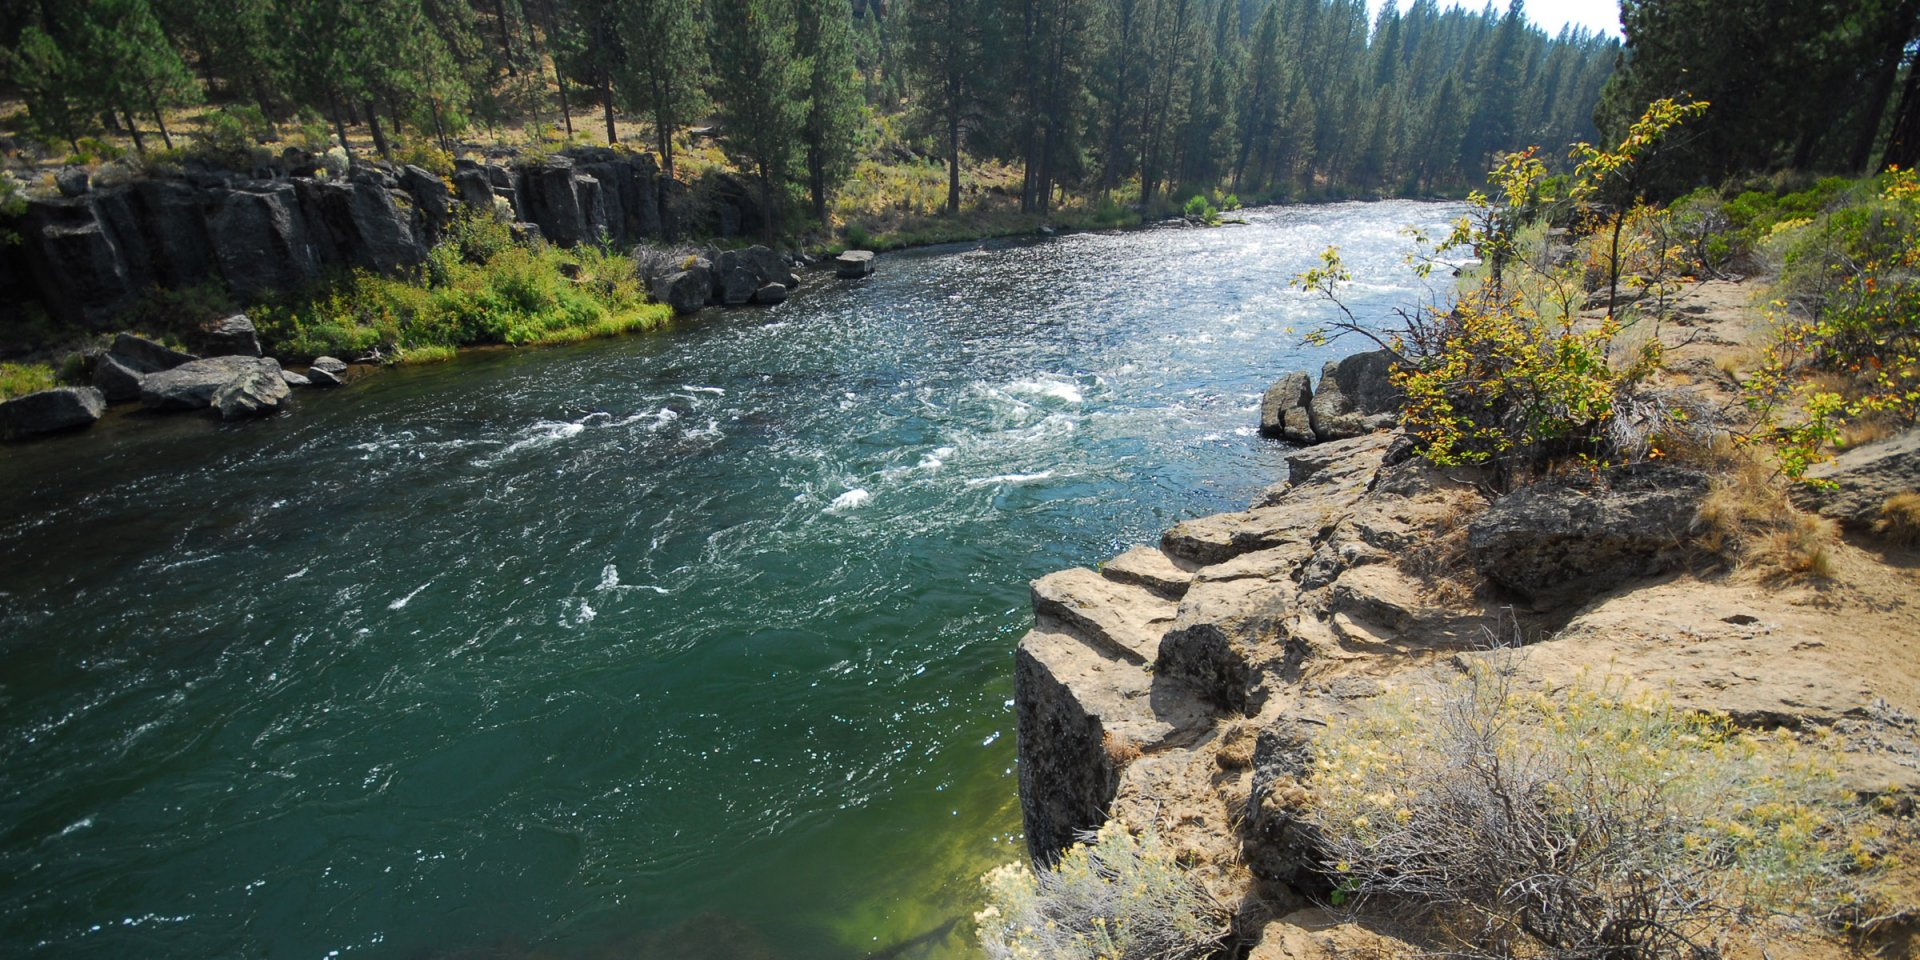 Deschutes River Trail Meadow Camp Day Use Area